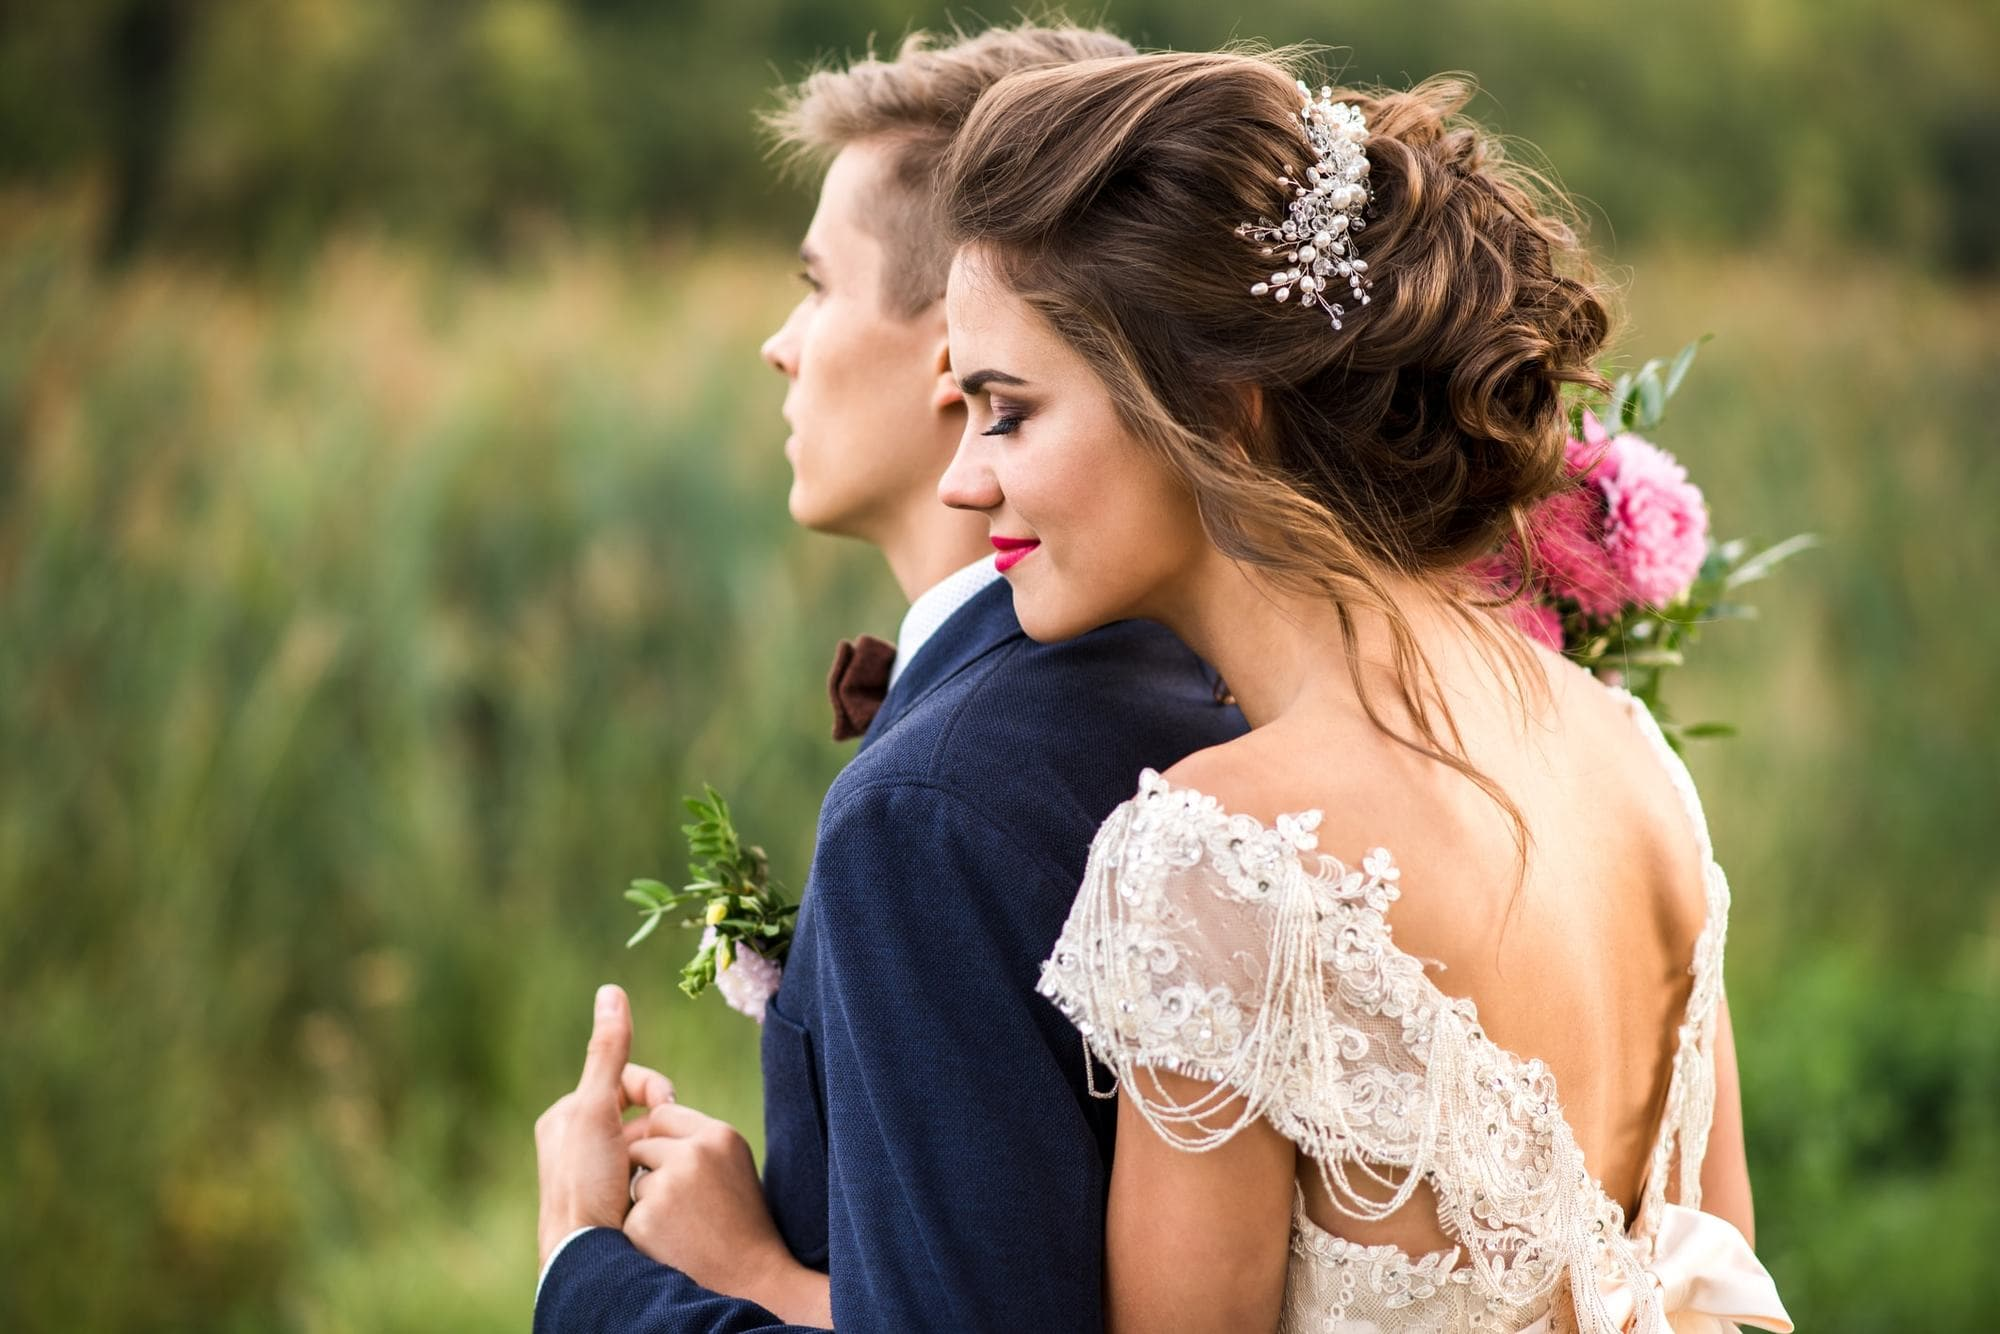 2018 Top Wedding Hairstyles For Amazing Bridal Style! 7